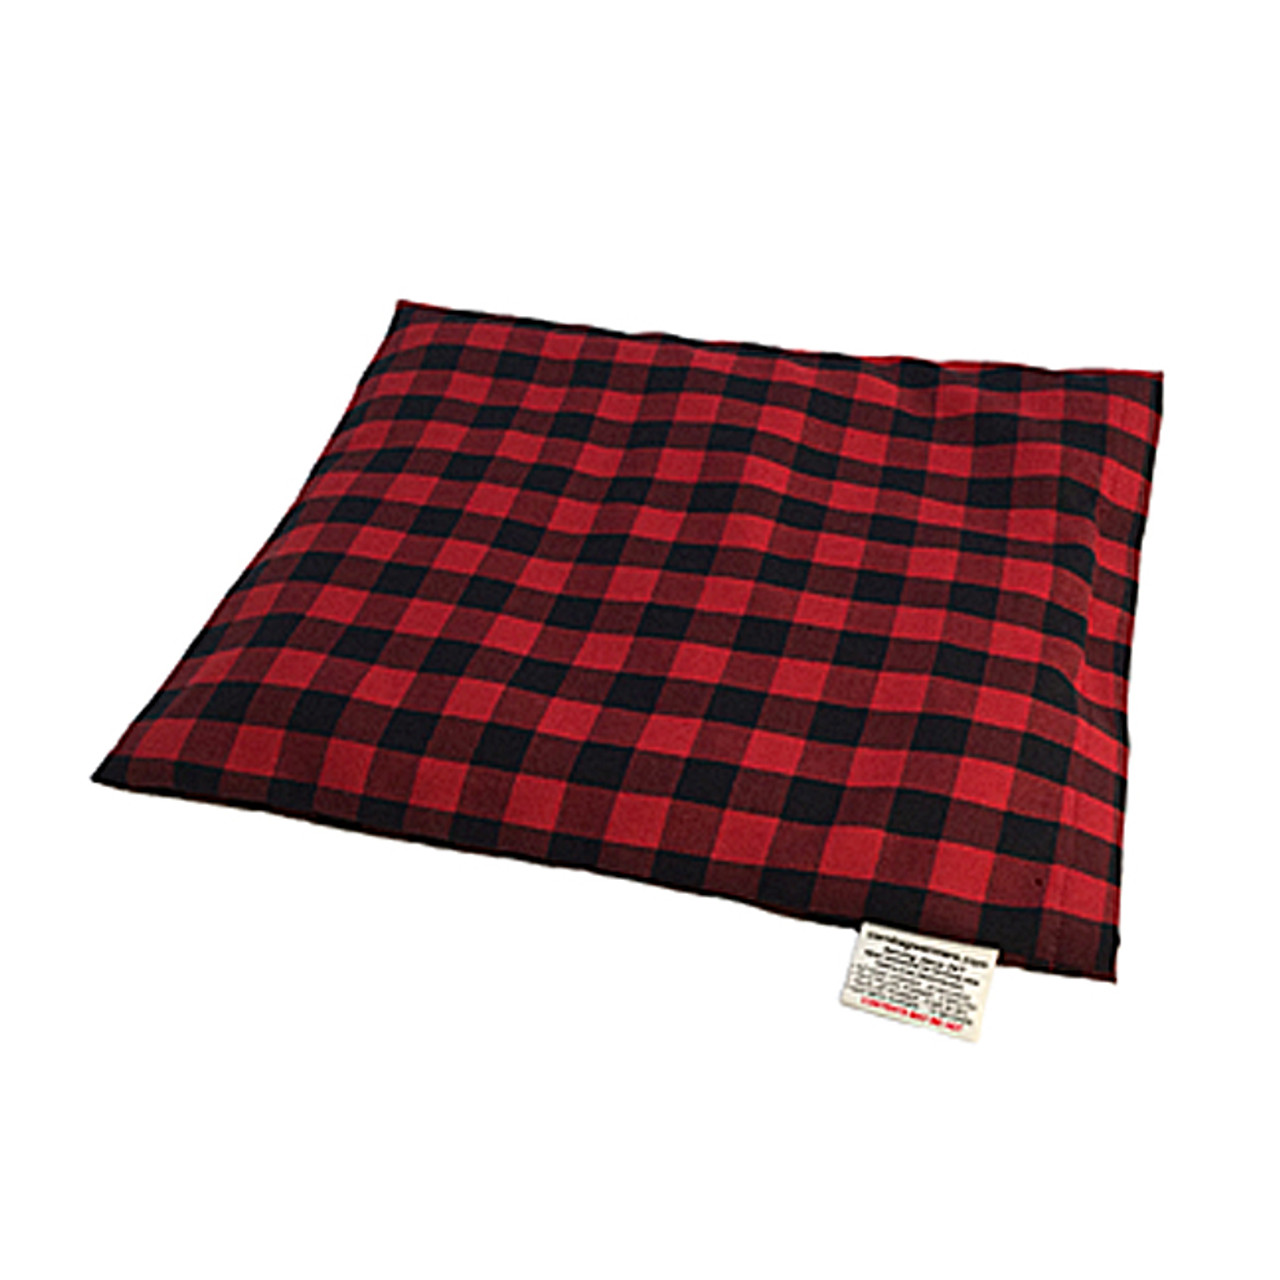 Deep Red & Black Plaid Pillow Warmer Microwave Heating Pad